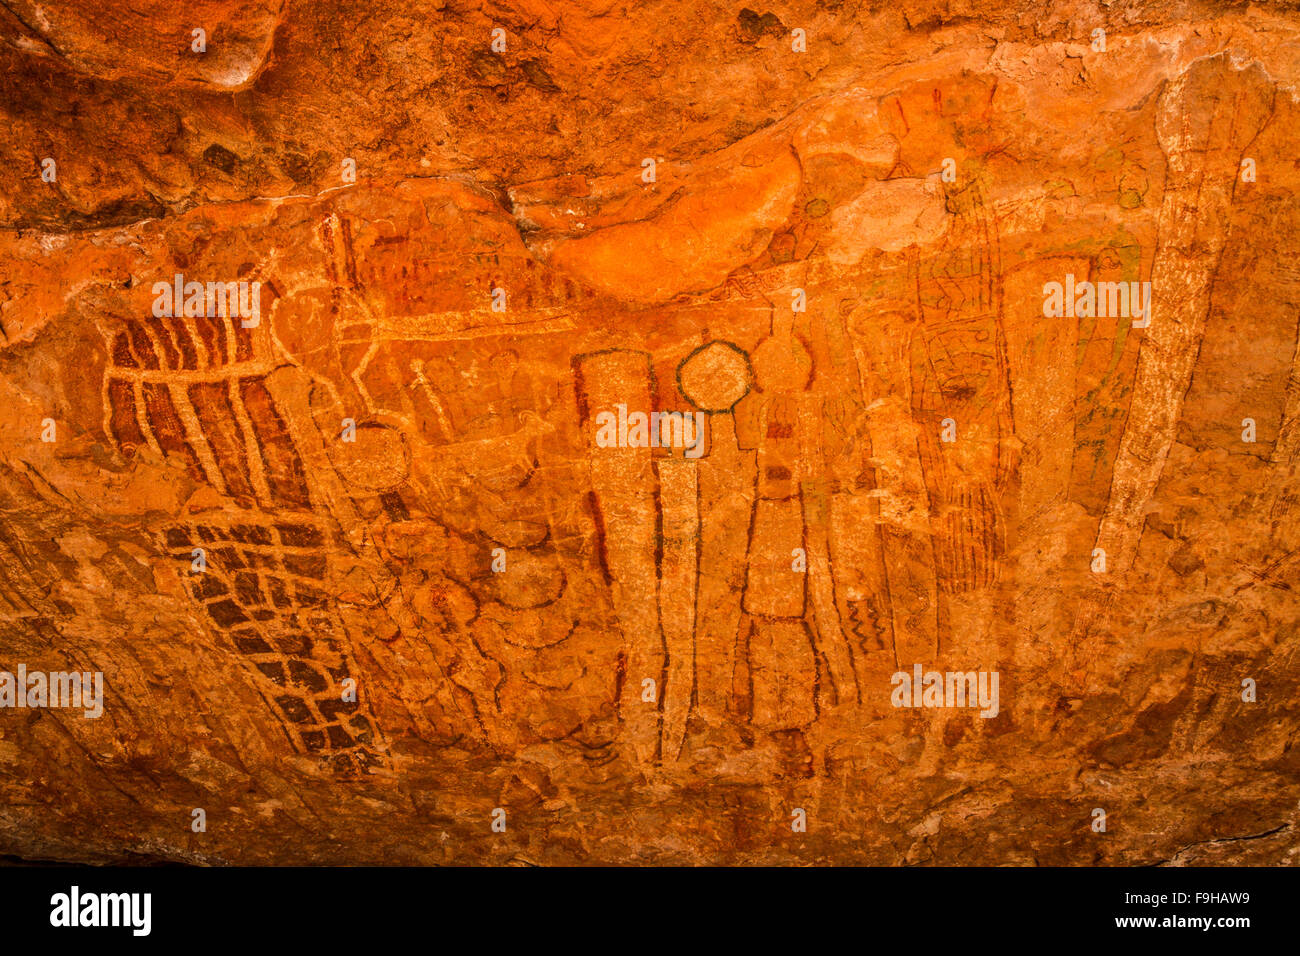 Grand Canyon Polychrome Rock Art, National Park, Arizona  Ancient prictographs up to 8,000 years old - Stock Image